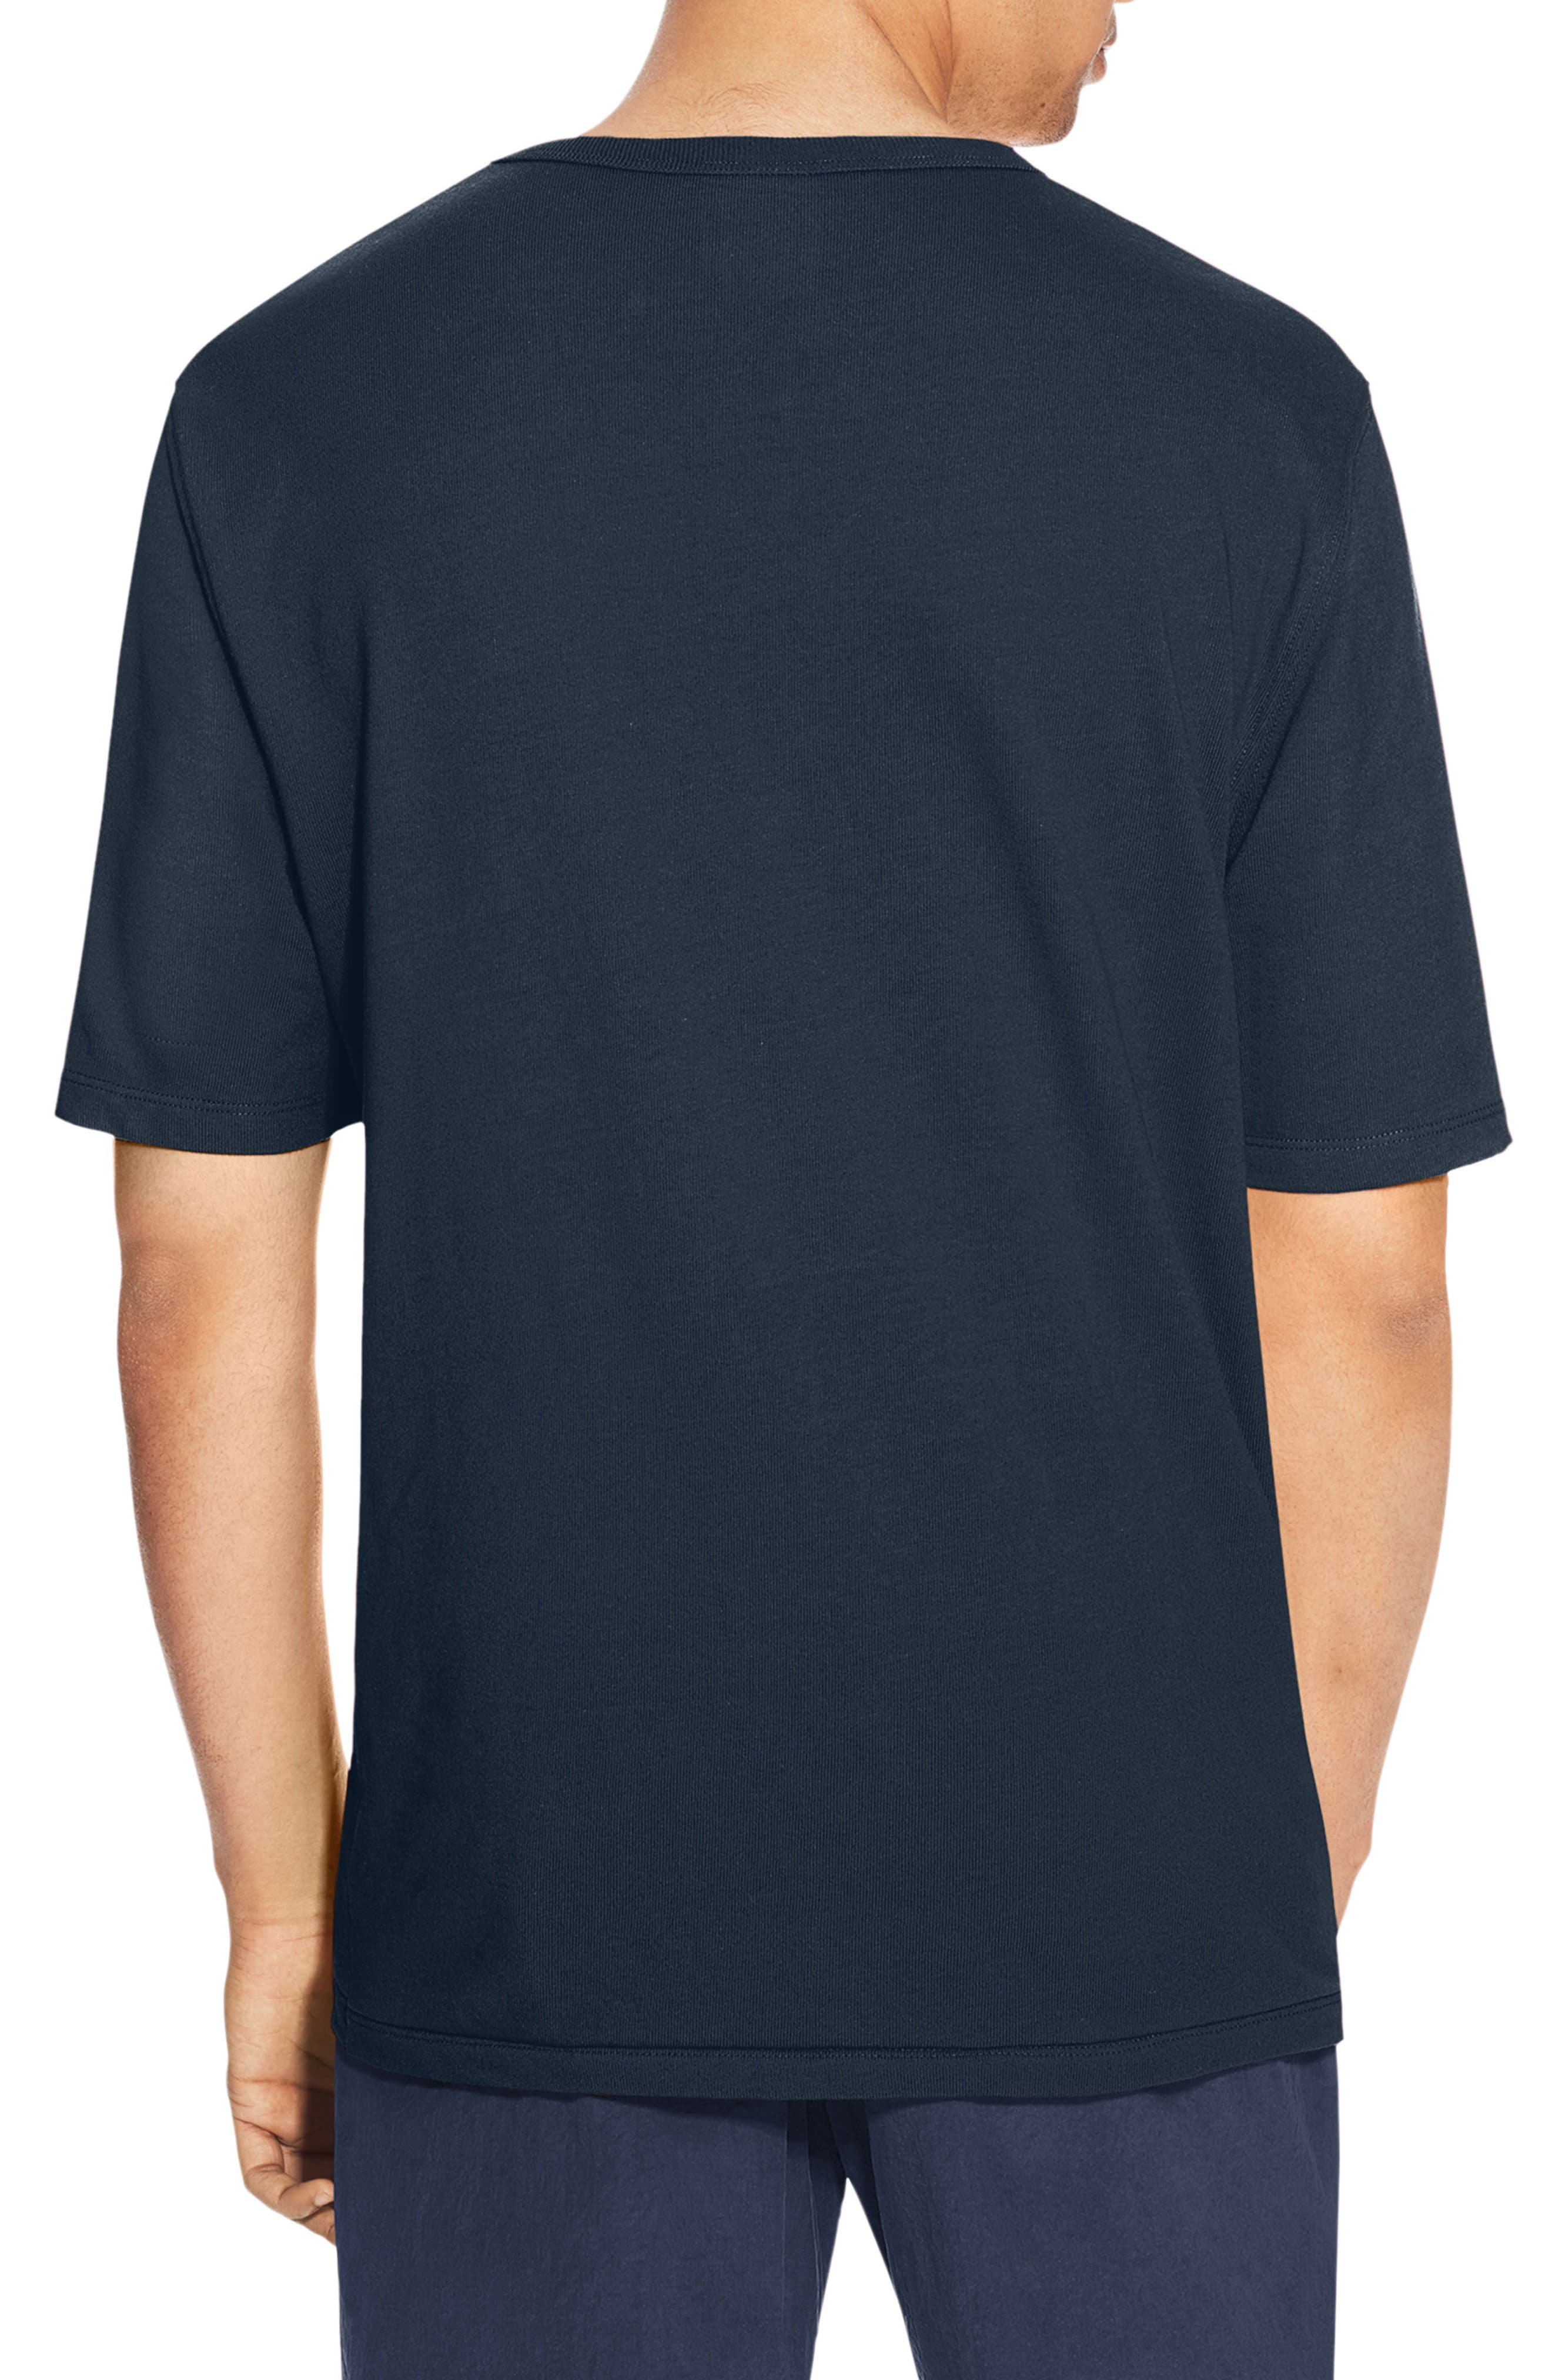 Takes A Little More Heritage Graphic T-Shirt,                             Alternate thumbnail 2, color,                             Navy